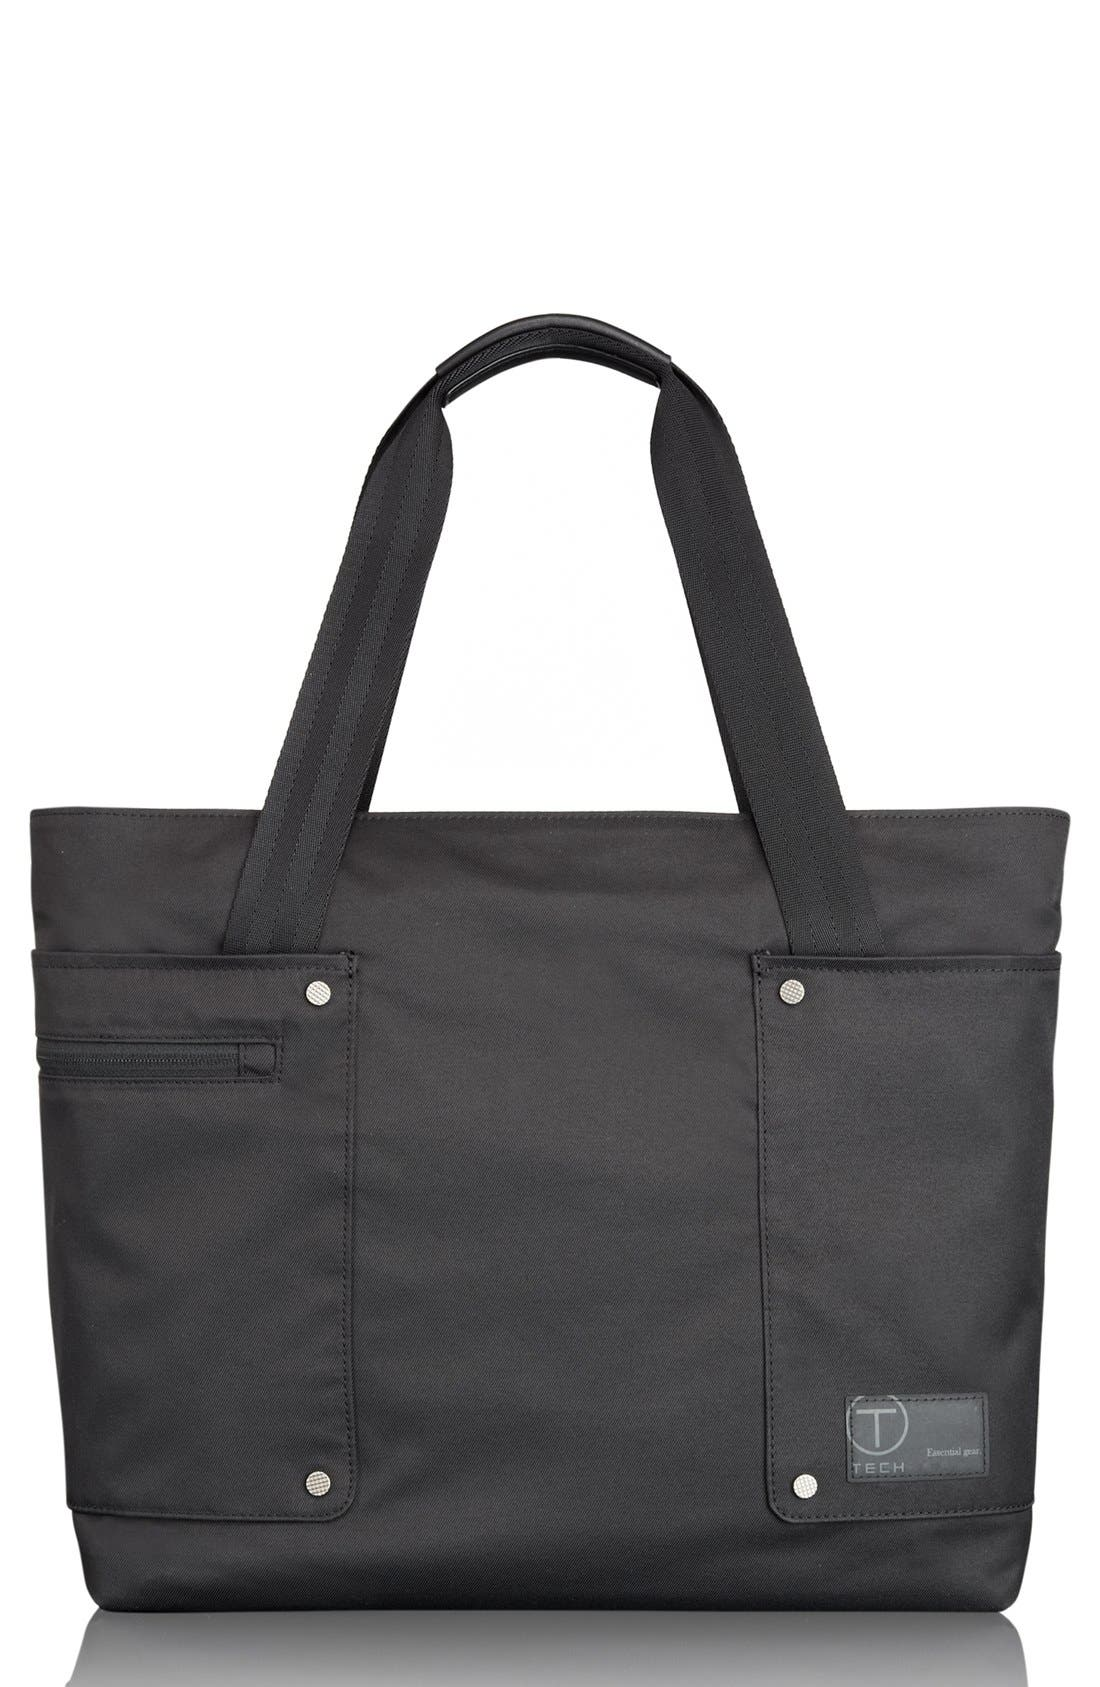 Main Image - T-Tech by Tumi 'Icon - Haley' Tote Bag